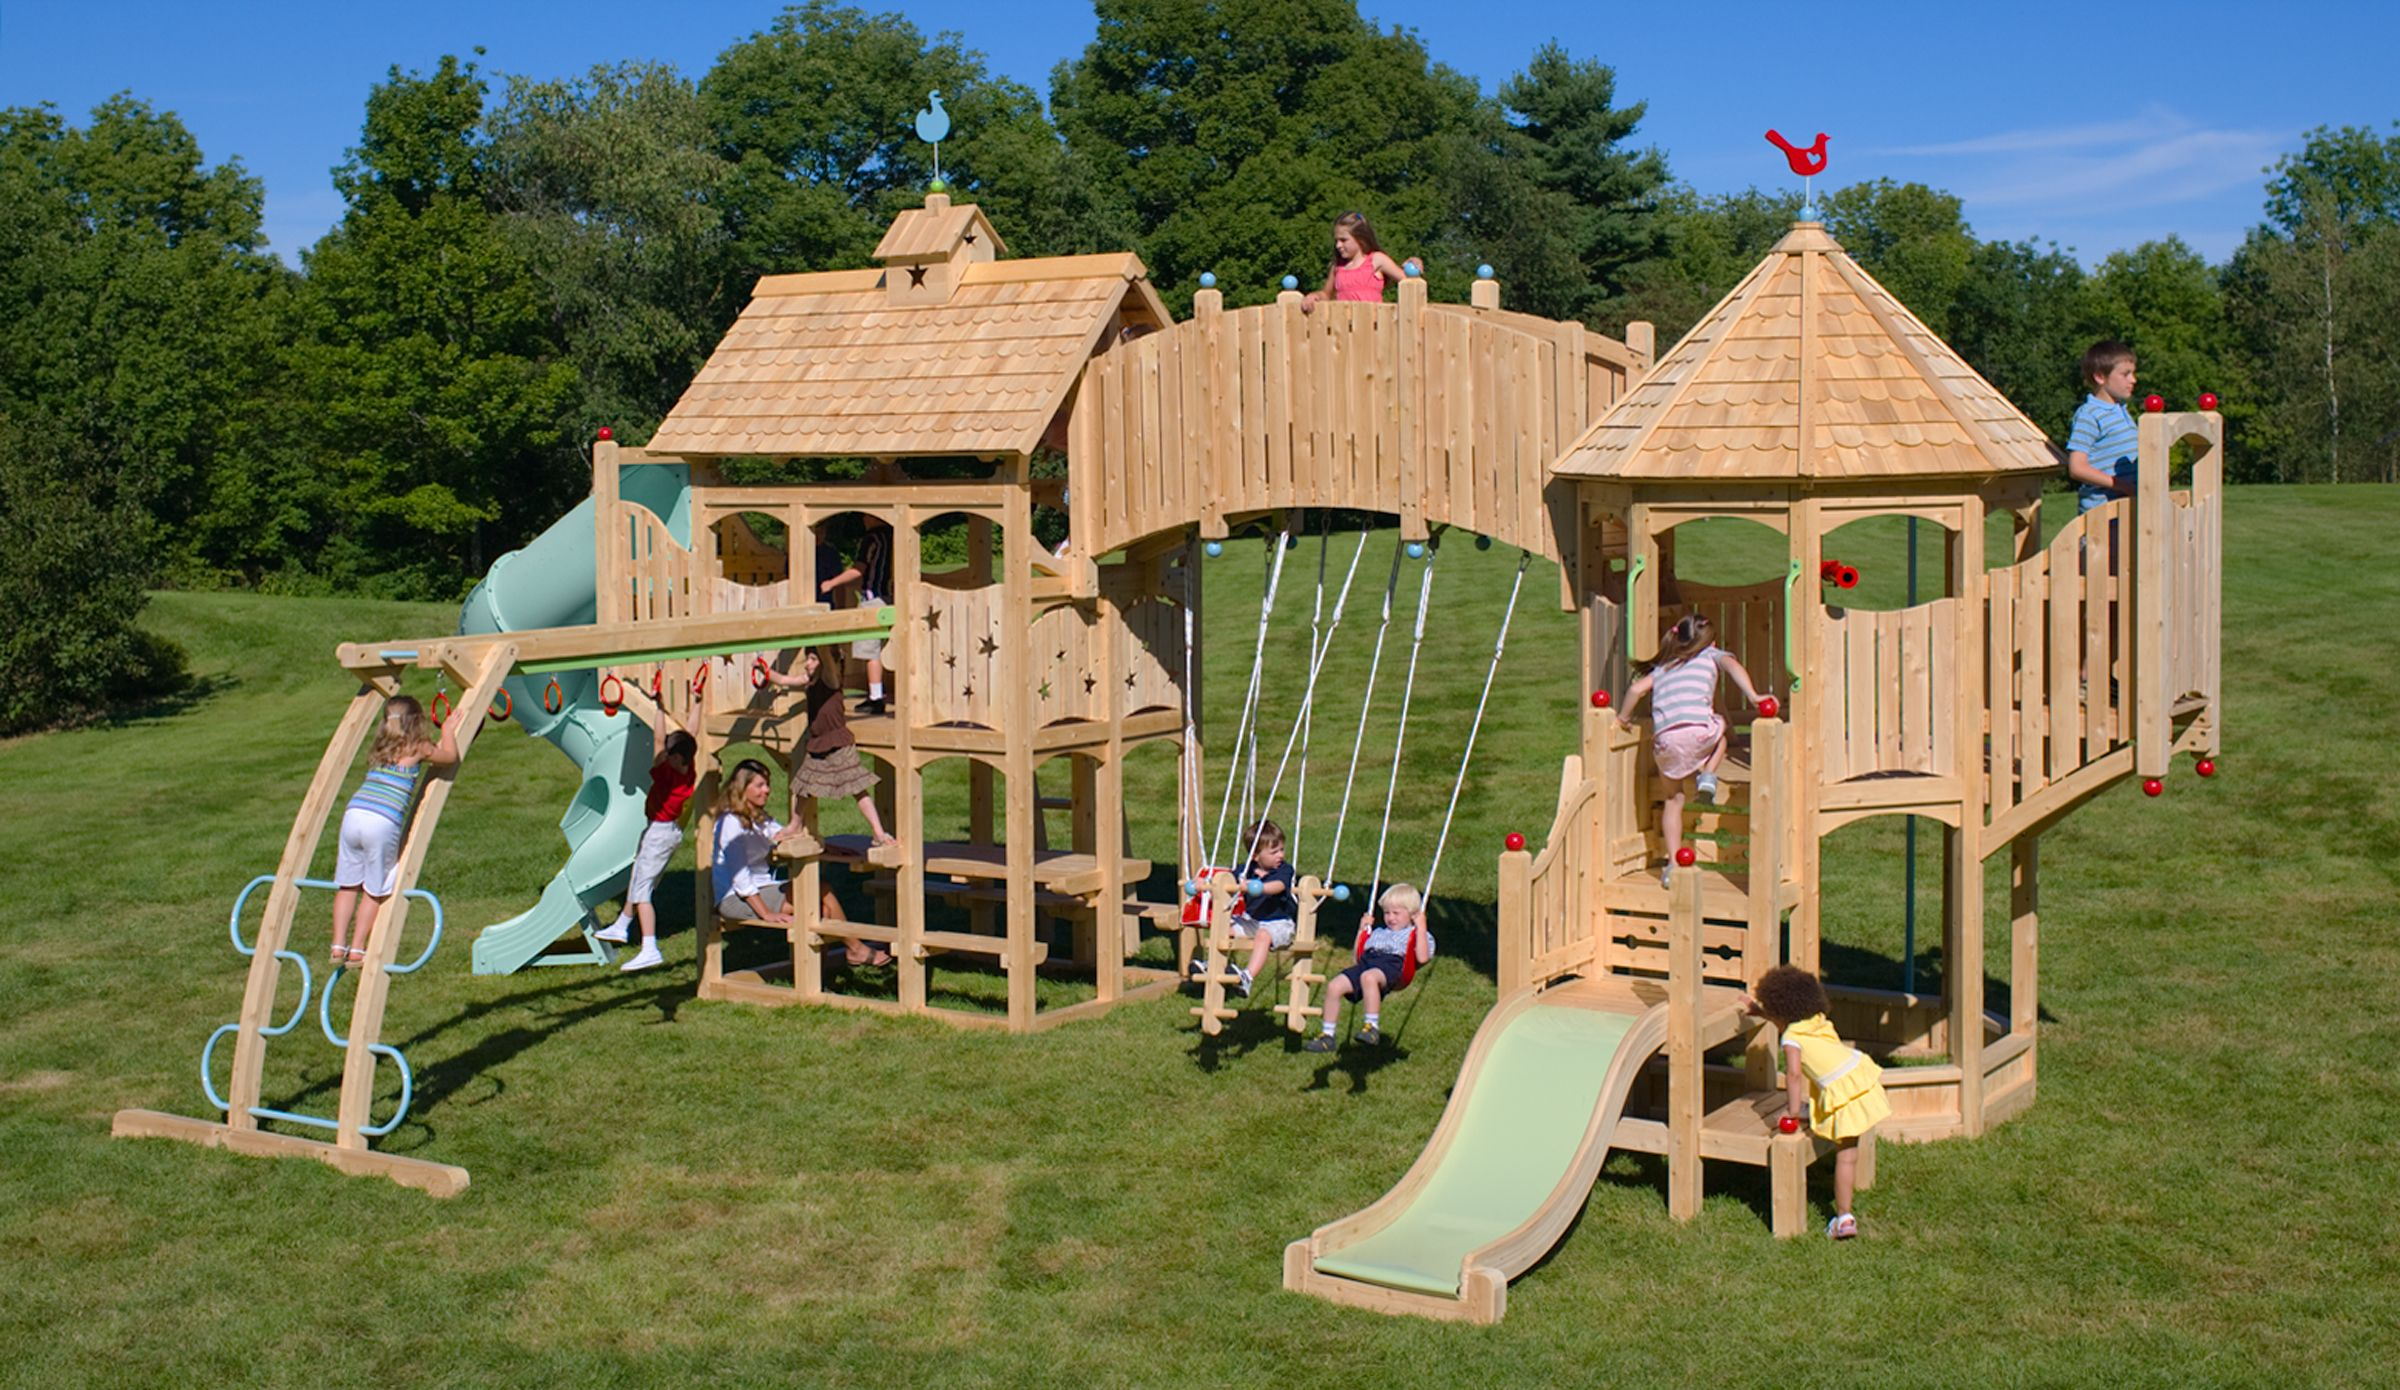 Serendipity 3 Swing Set And Outdoor Play Set Cedarworks Playset Outdoor Kids Playset Outdoor Backyard Swing Sets